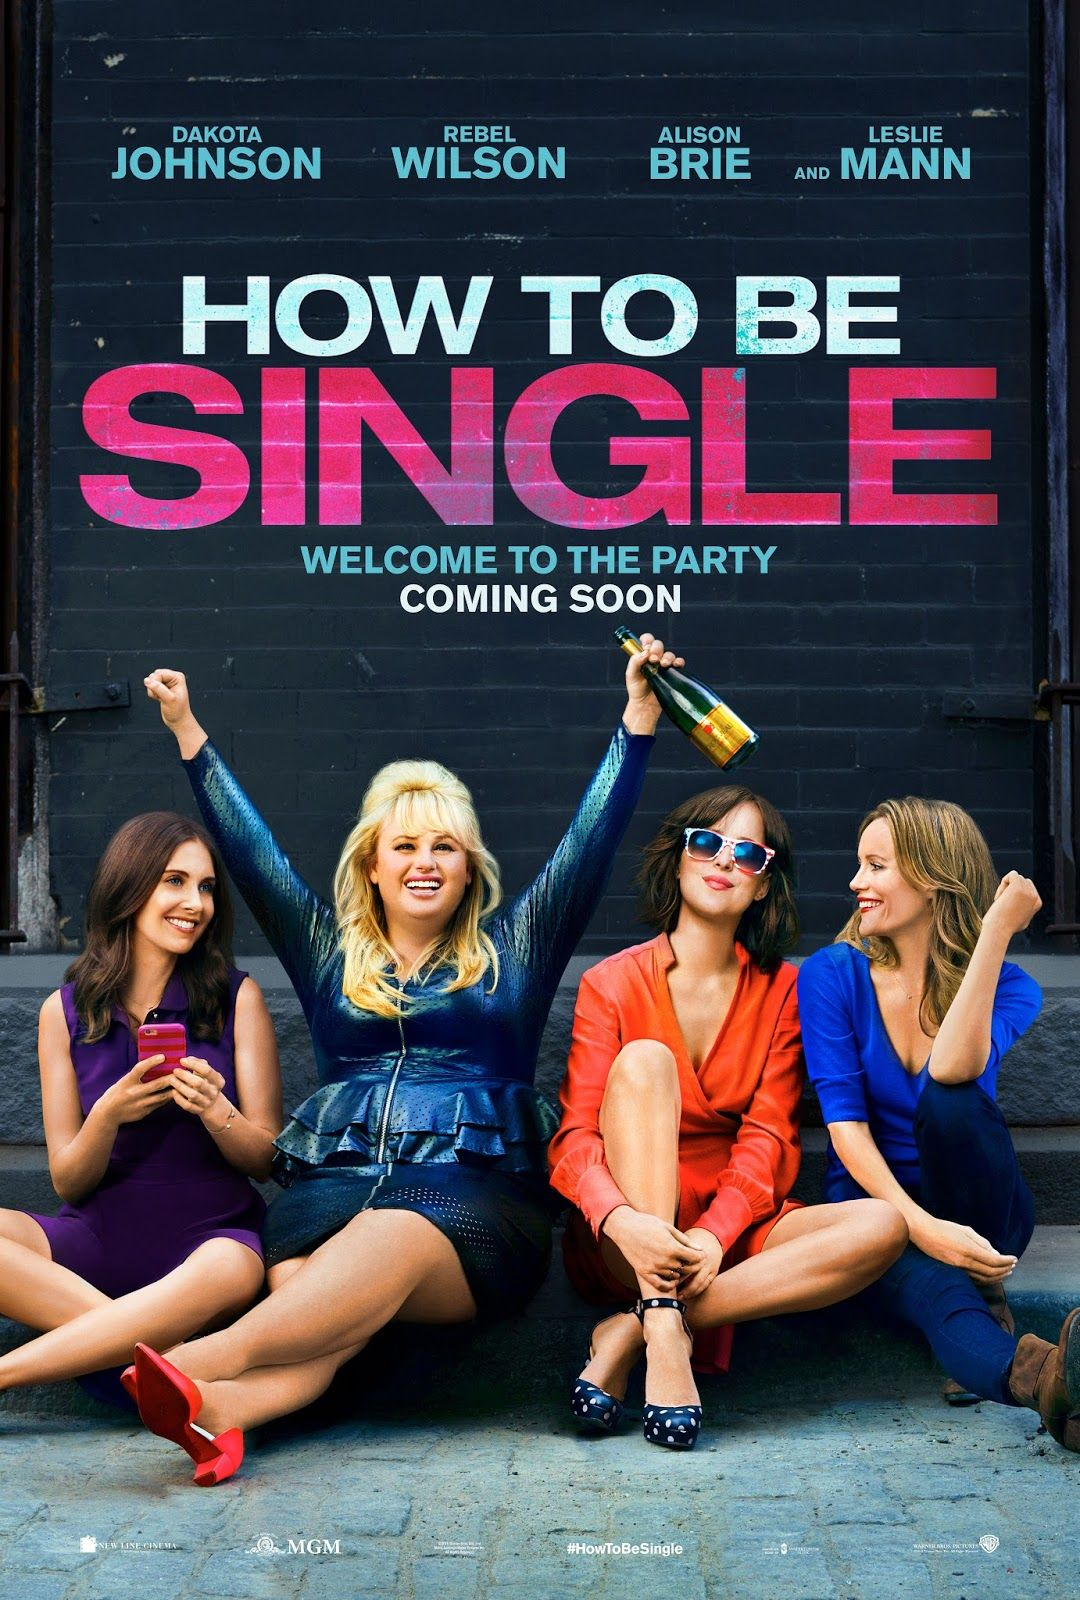 How To Be Single Poster With Images How To Be Single Movie